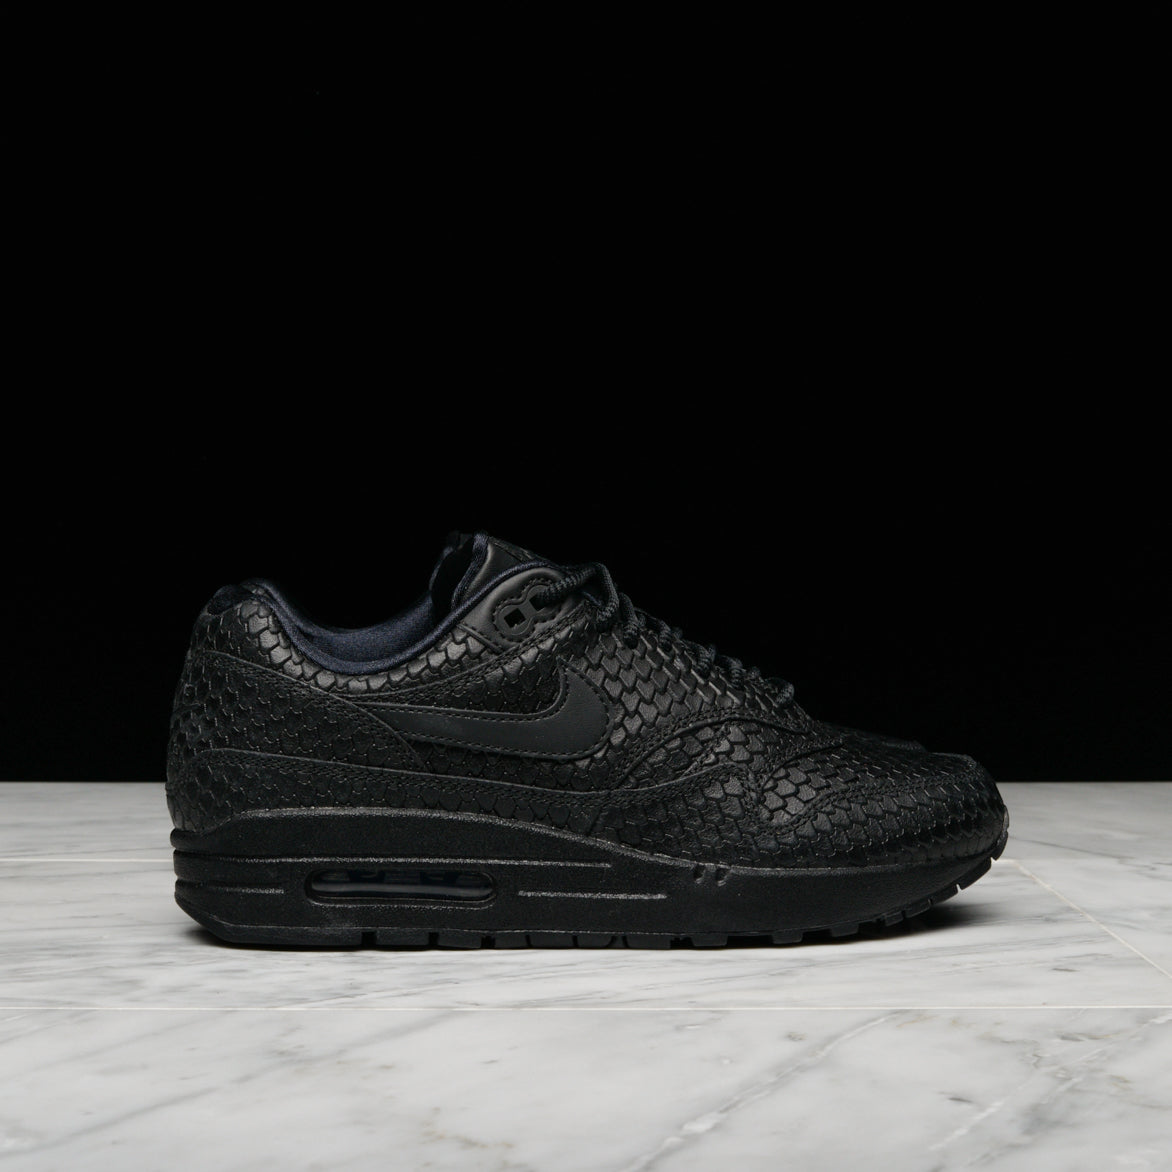 WMNS AIR MAX 1 PREMIUM BLACK ANTHRACITE